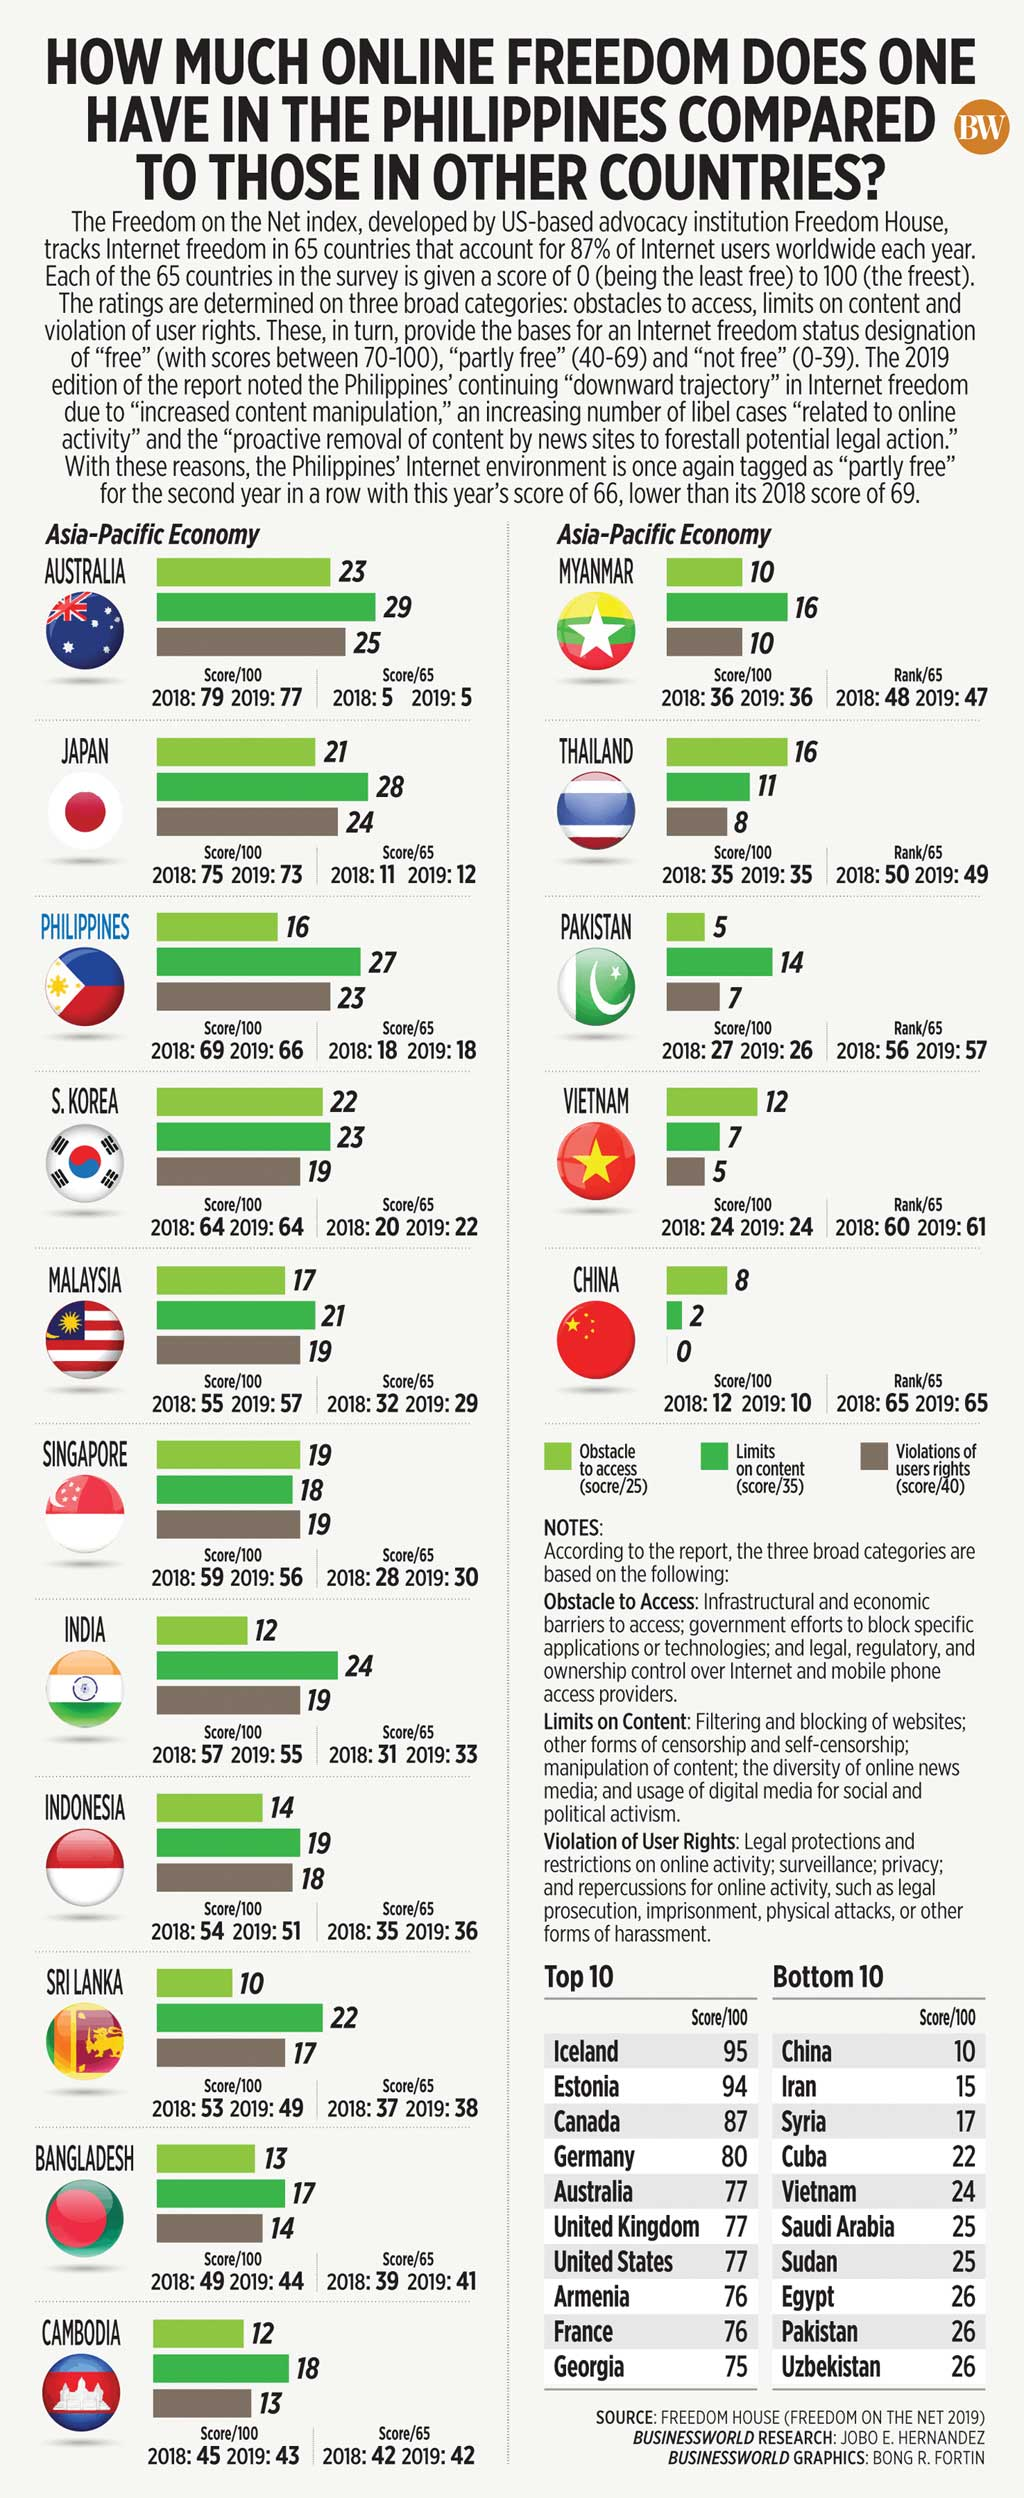 How much online freedom does one have in the Philippines compared to those in other countries?